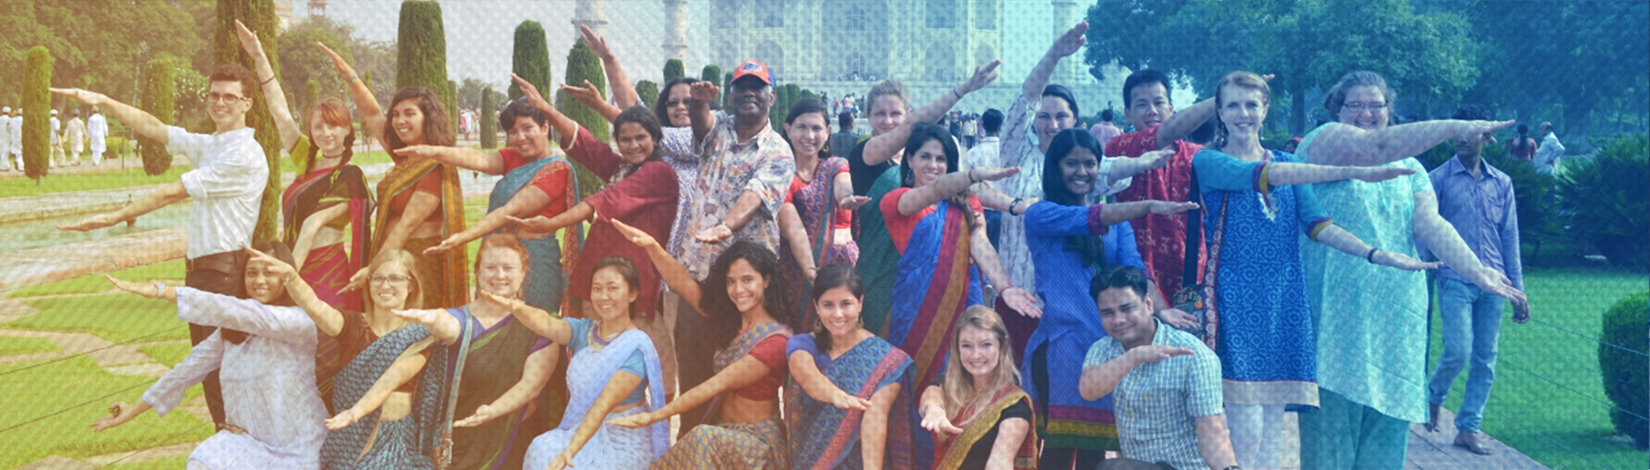 Group of CALS students studying abroad in India, wearing traditional clothing and gator chomping in front of the Taj Mahal.